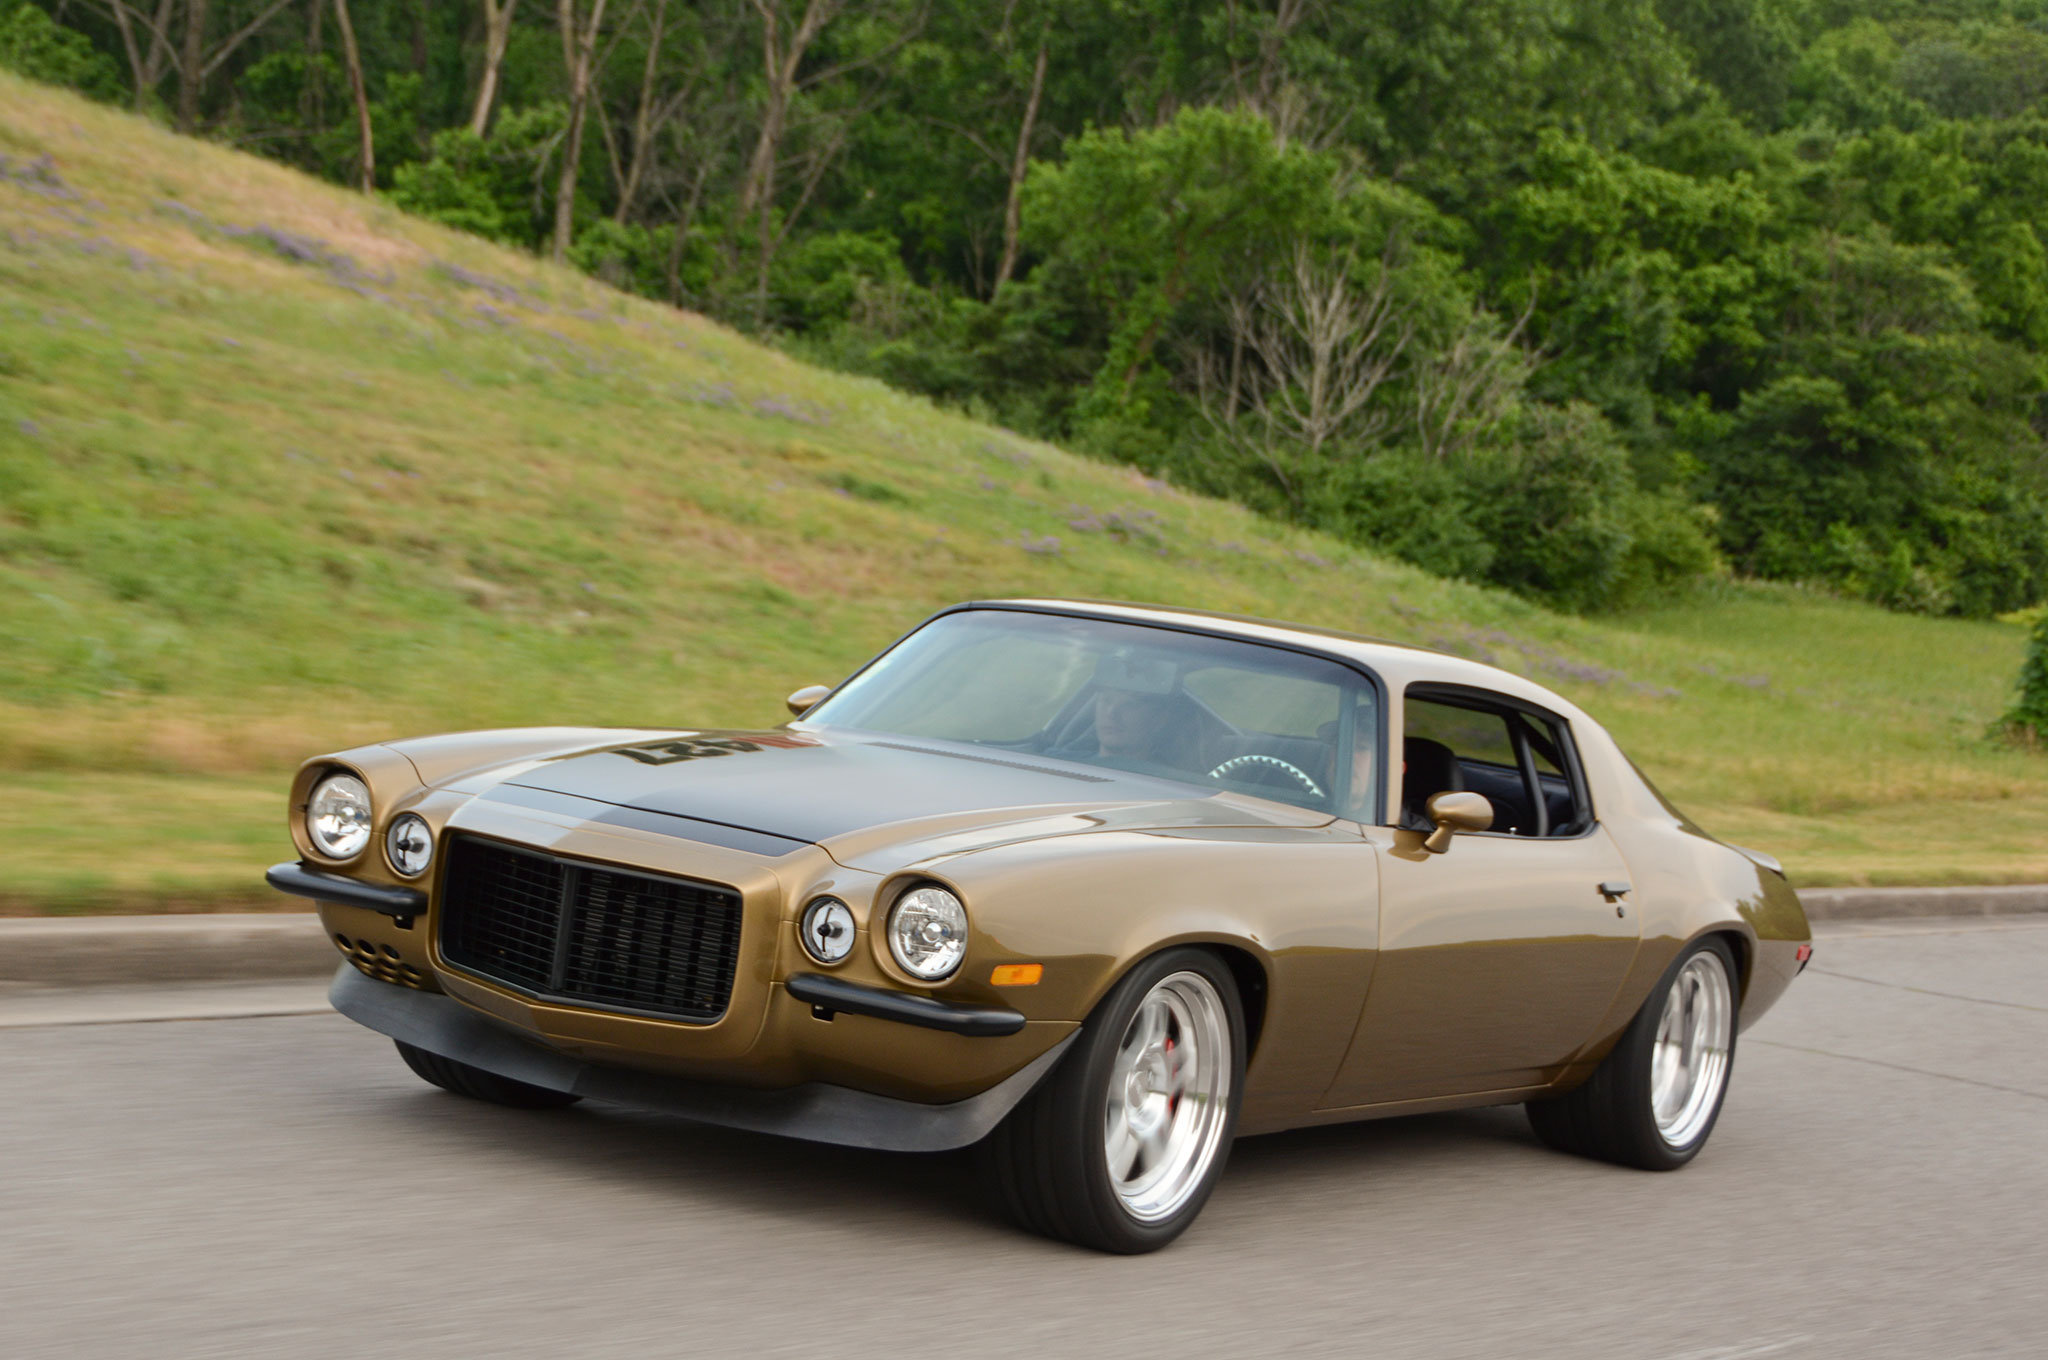 This Killer Pro Touring 1970 Camaro Rocks to an Unlikely Color